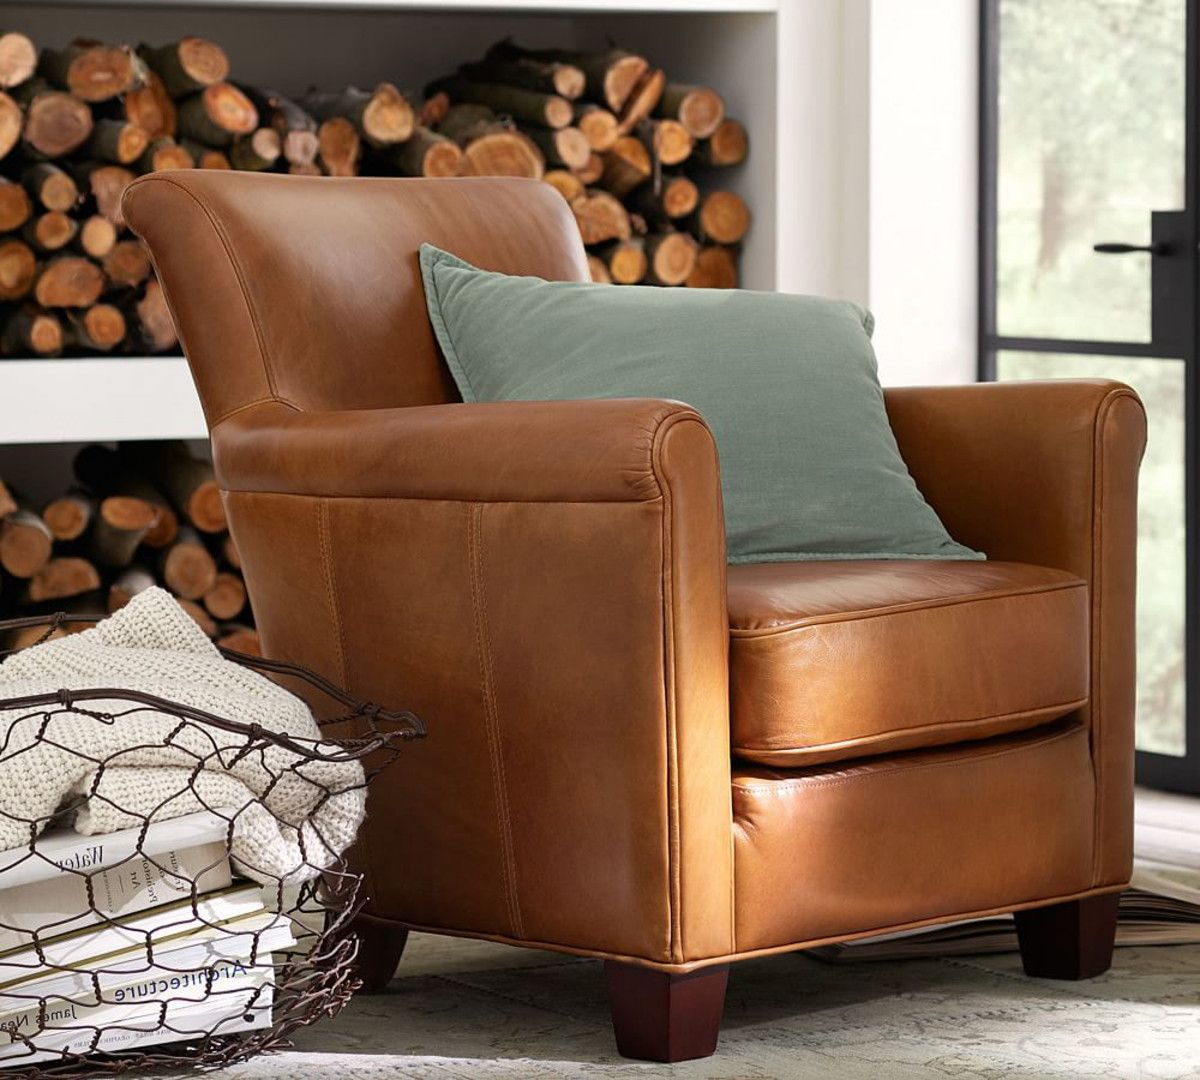 leather armchair australia - Google Search | Living room ...